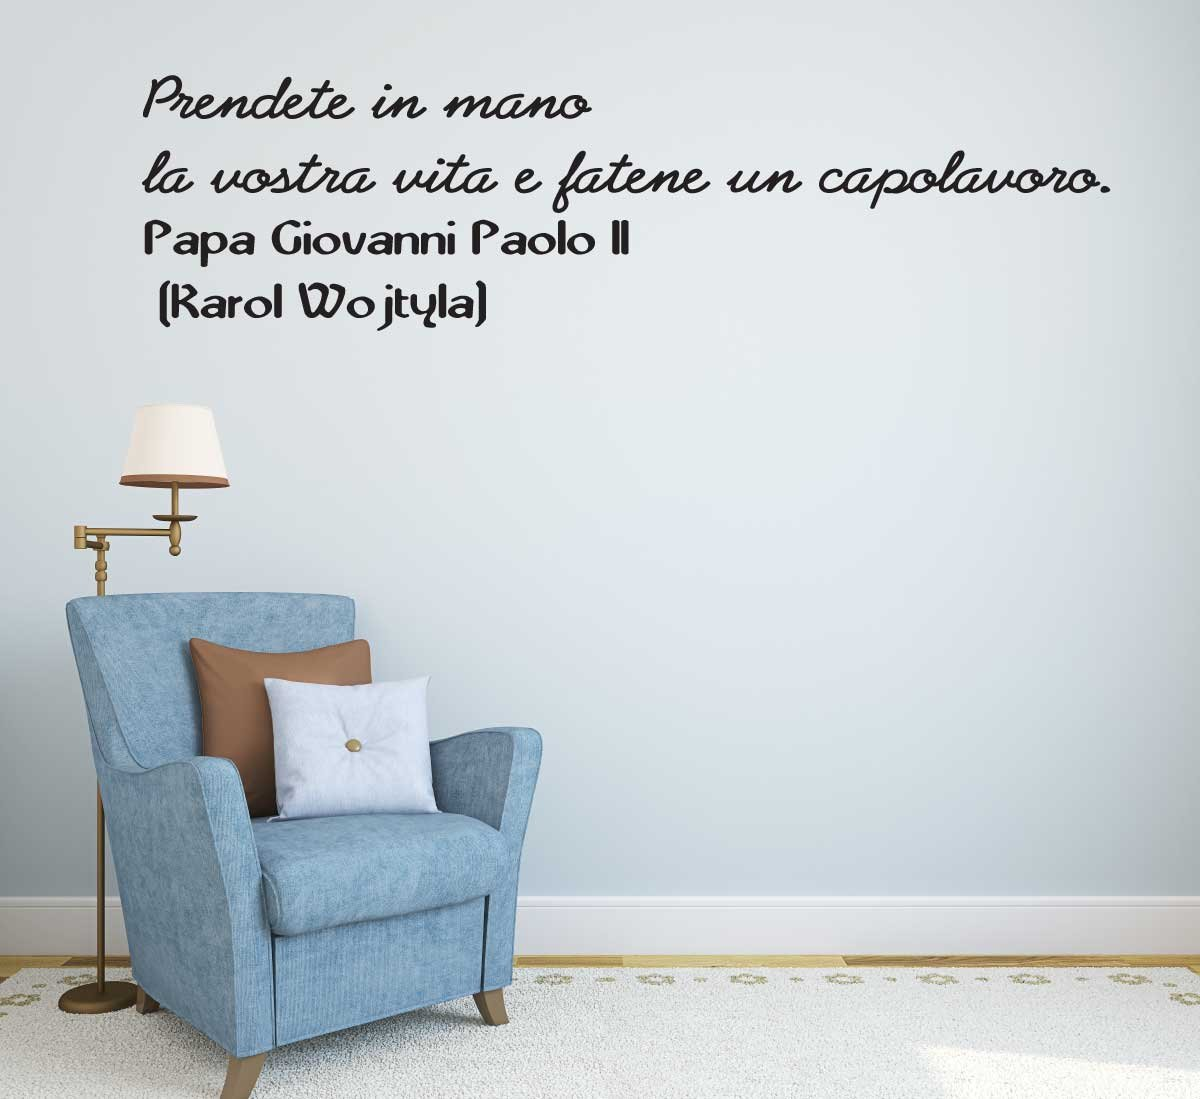 Adesivo4you Wall Sticker Prendete In Mano La Vostra Vita E Fatene Un